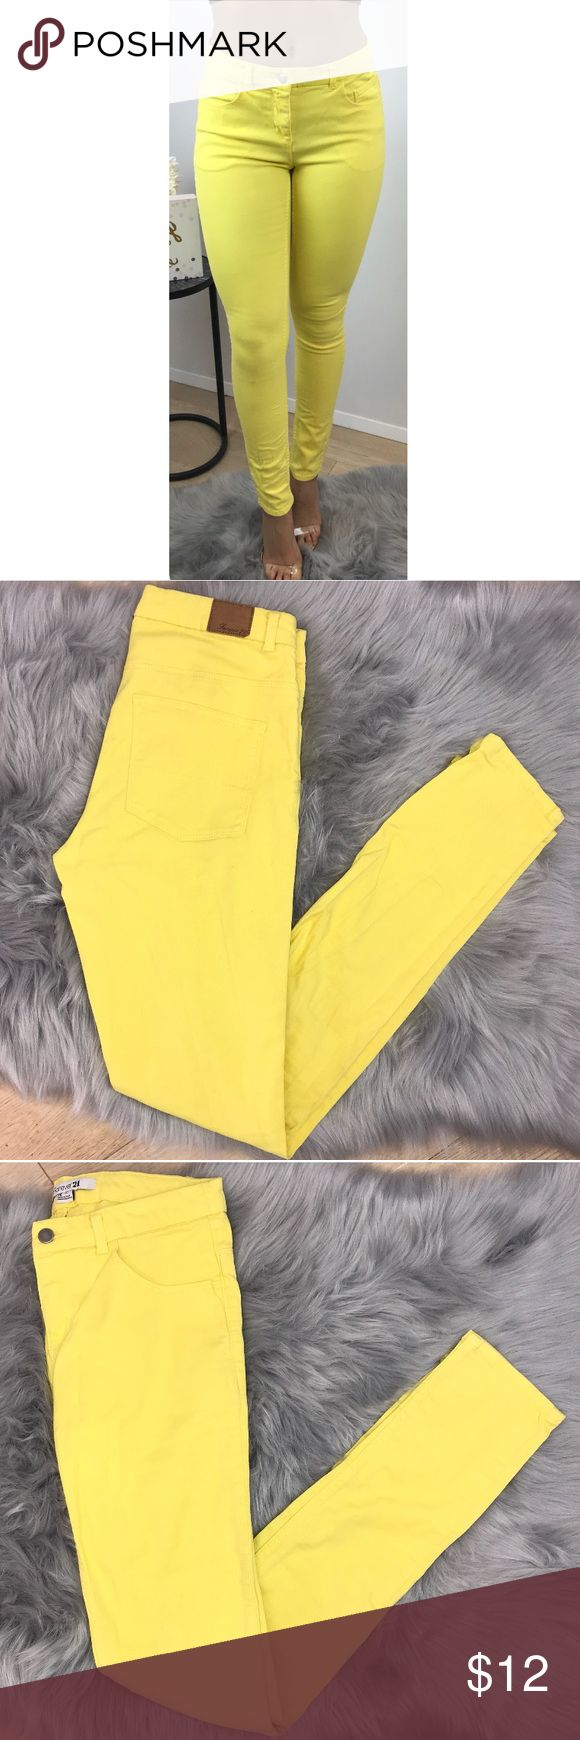 Forever 21 Yellow Skinny Jean Forever 21 gorgeous yellow skinny jeans, have been gently used. No stains (exactly as shown in pictures) Forever 21 Jeans Skinny